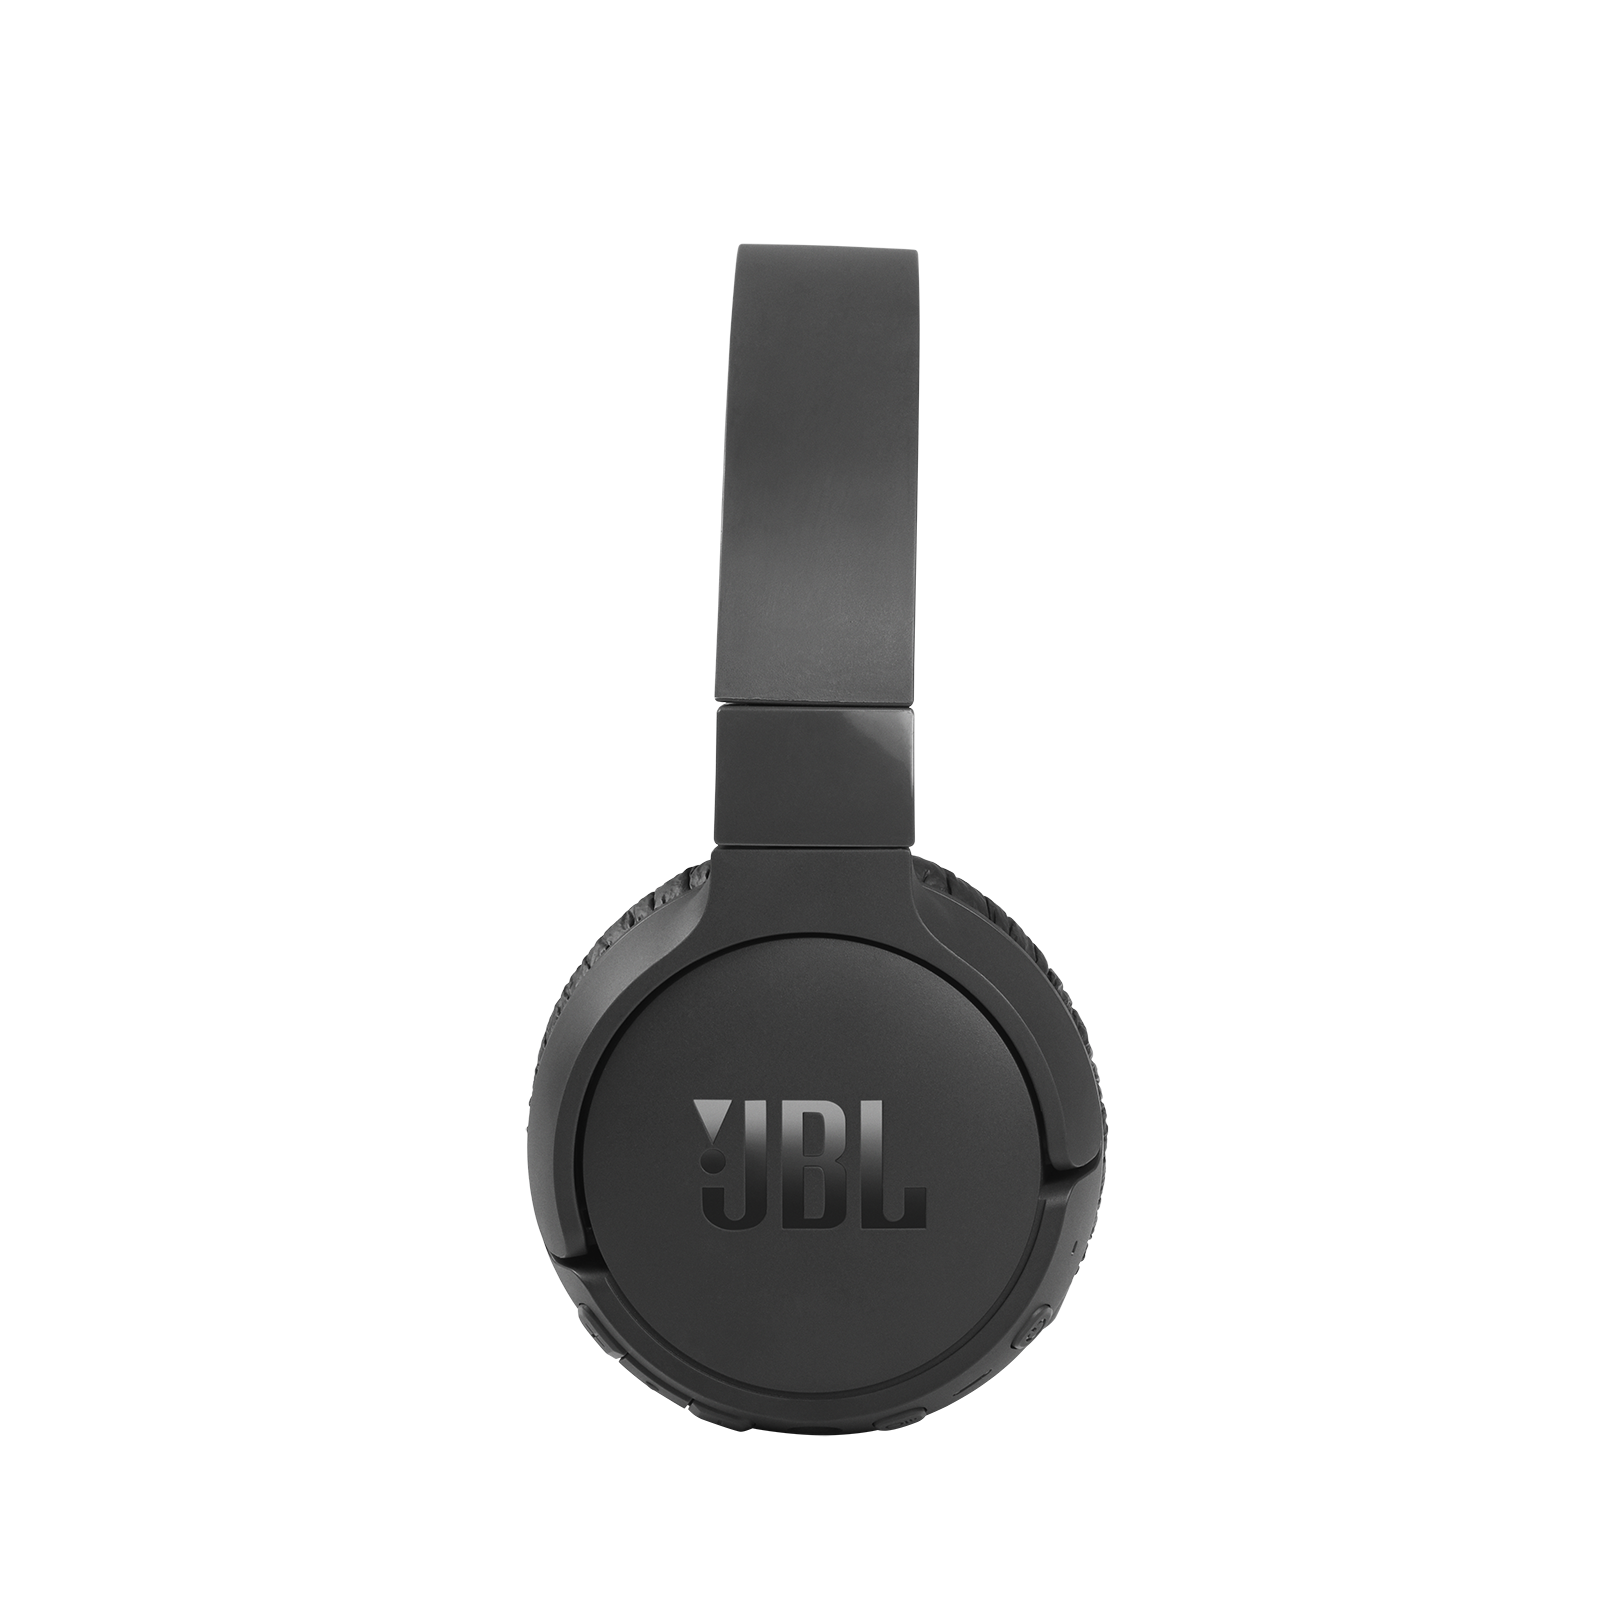 JBL Tune 660NC - Black - Wireless, on-ear, active noise-cancelling headphones. - Detailshot 1